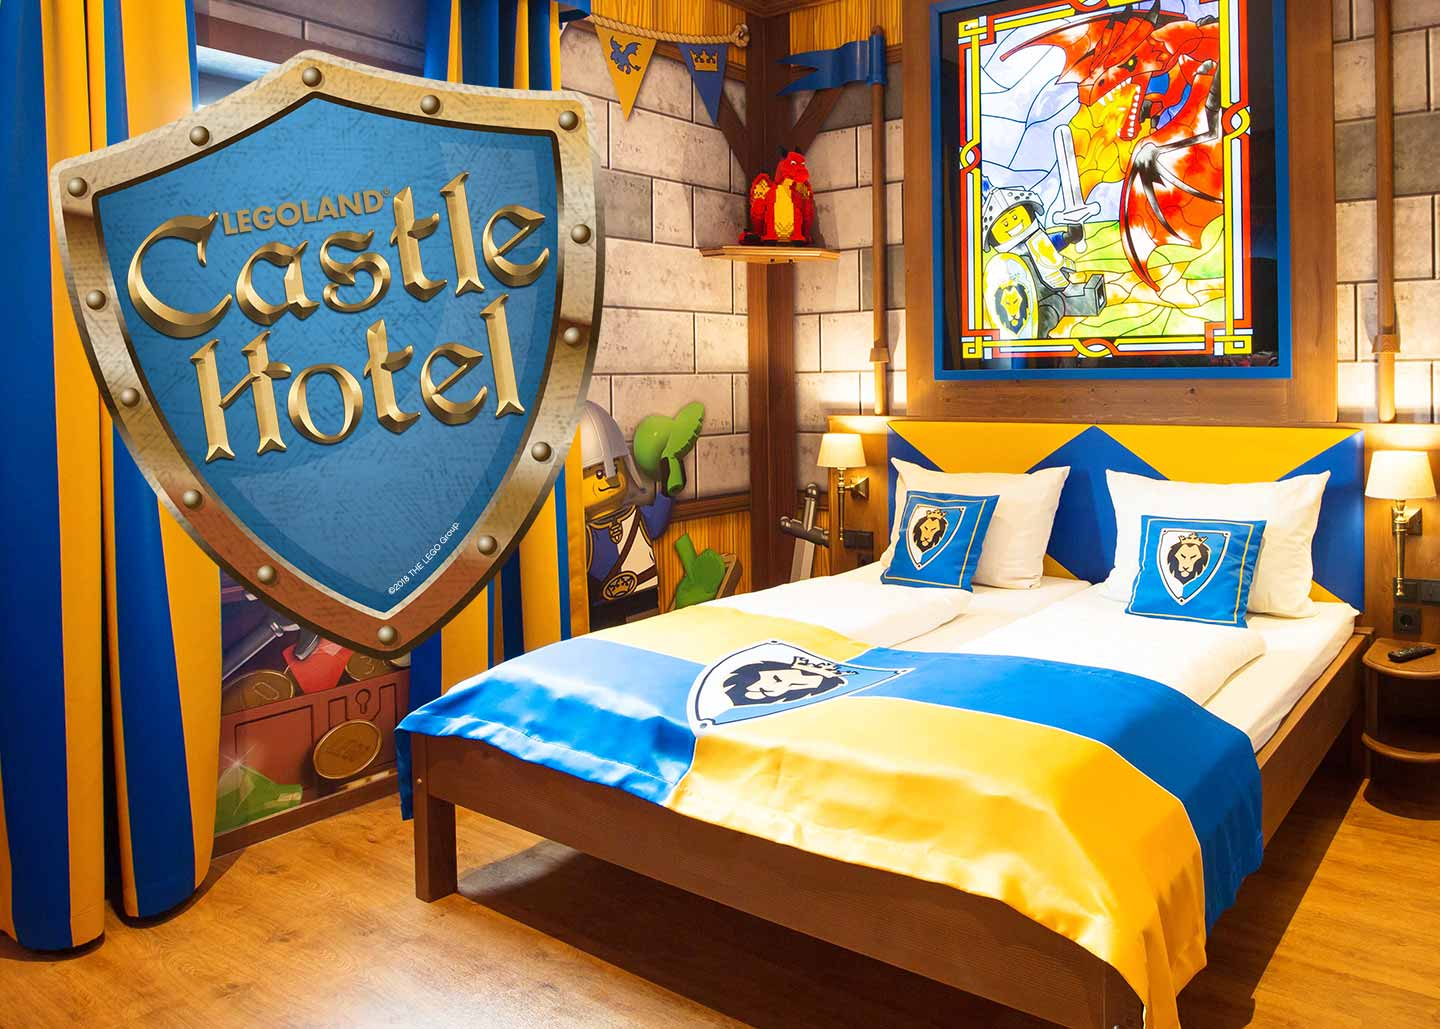 The new LEGOLAND Castle Hotel